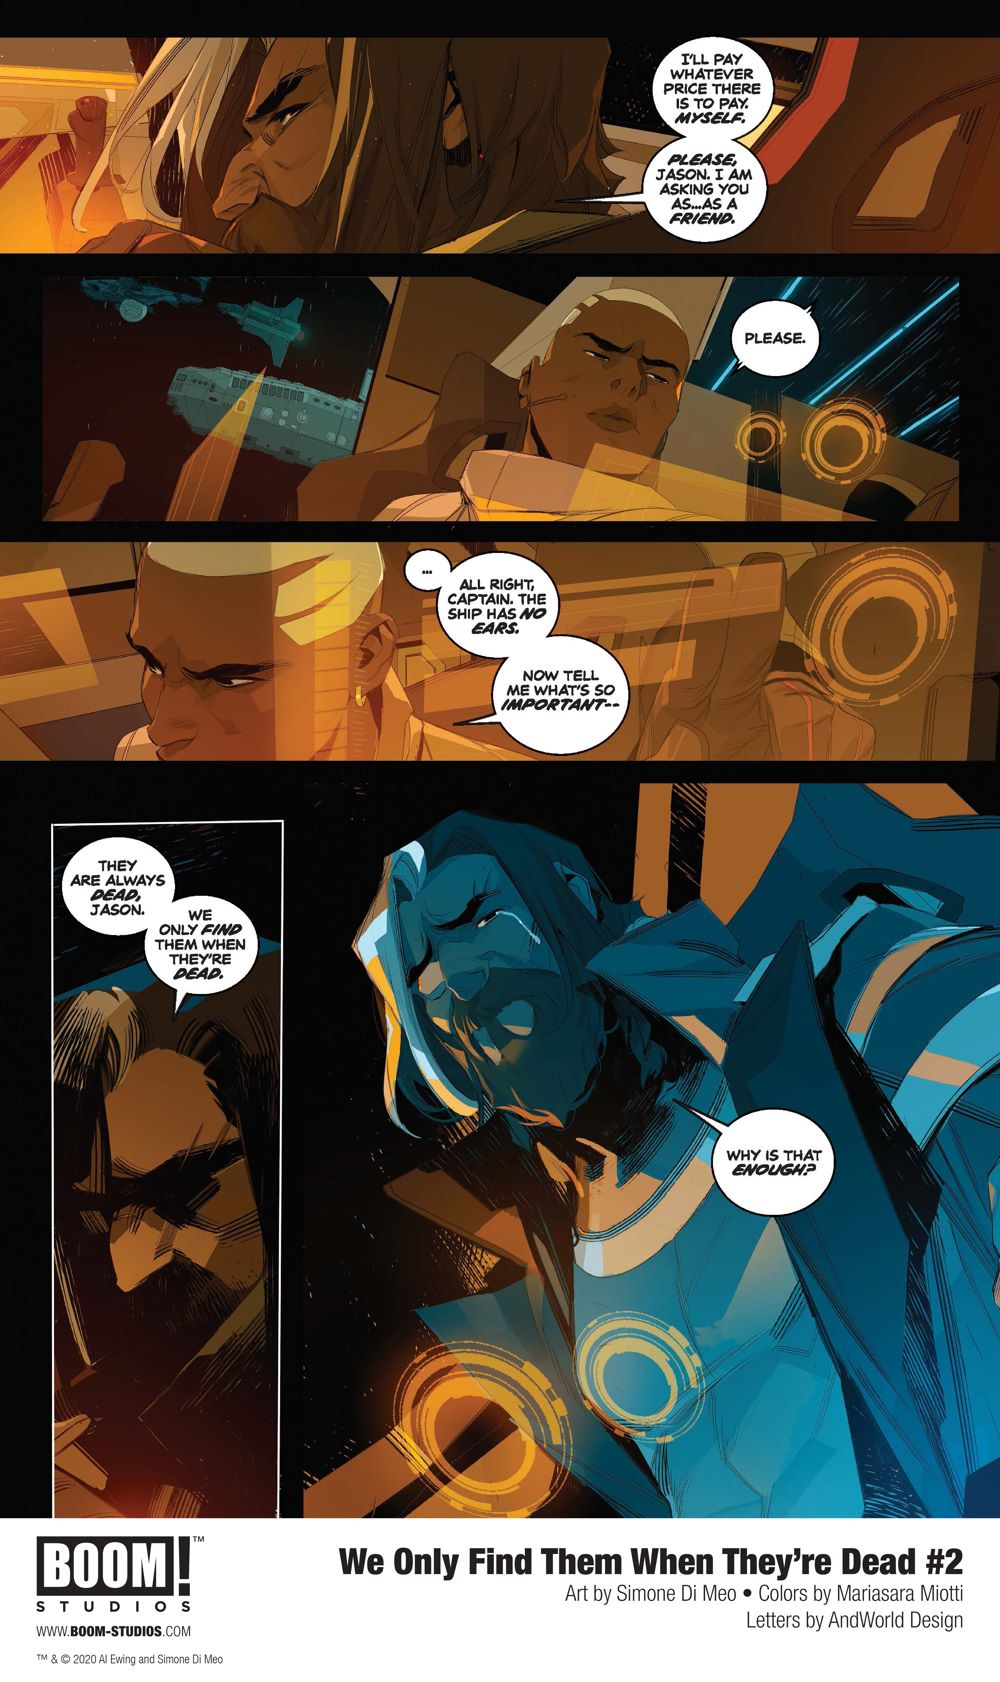 WeOnlyFindThem_002_InteriorArt_003_PROMO First Look at BOOM! Studios' WE ONLY FIND THEM WHEN THEY'RE DEAD #2